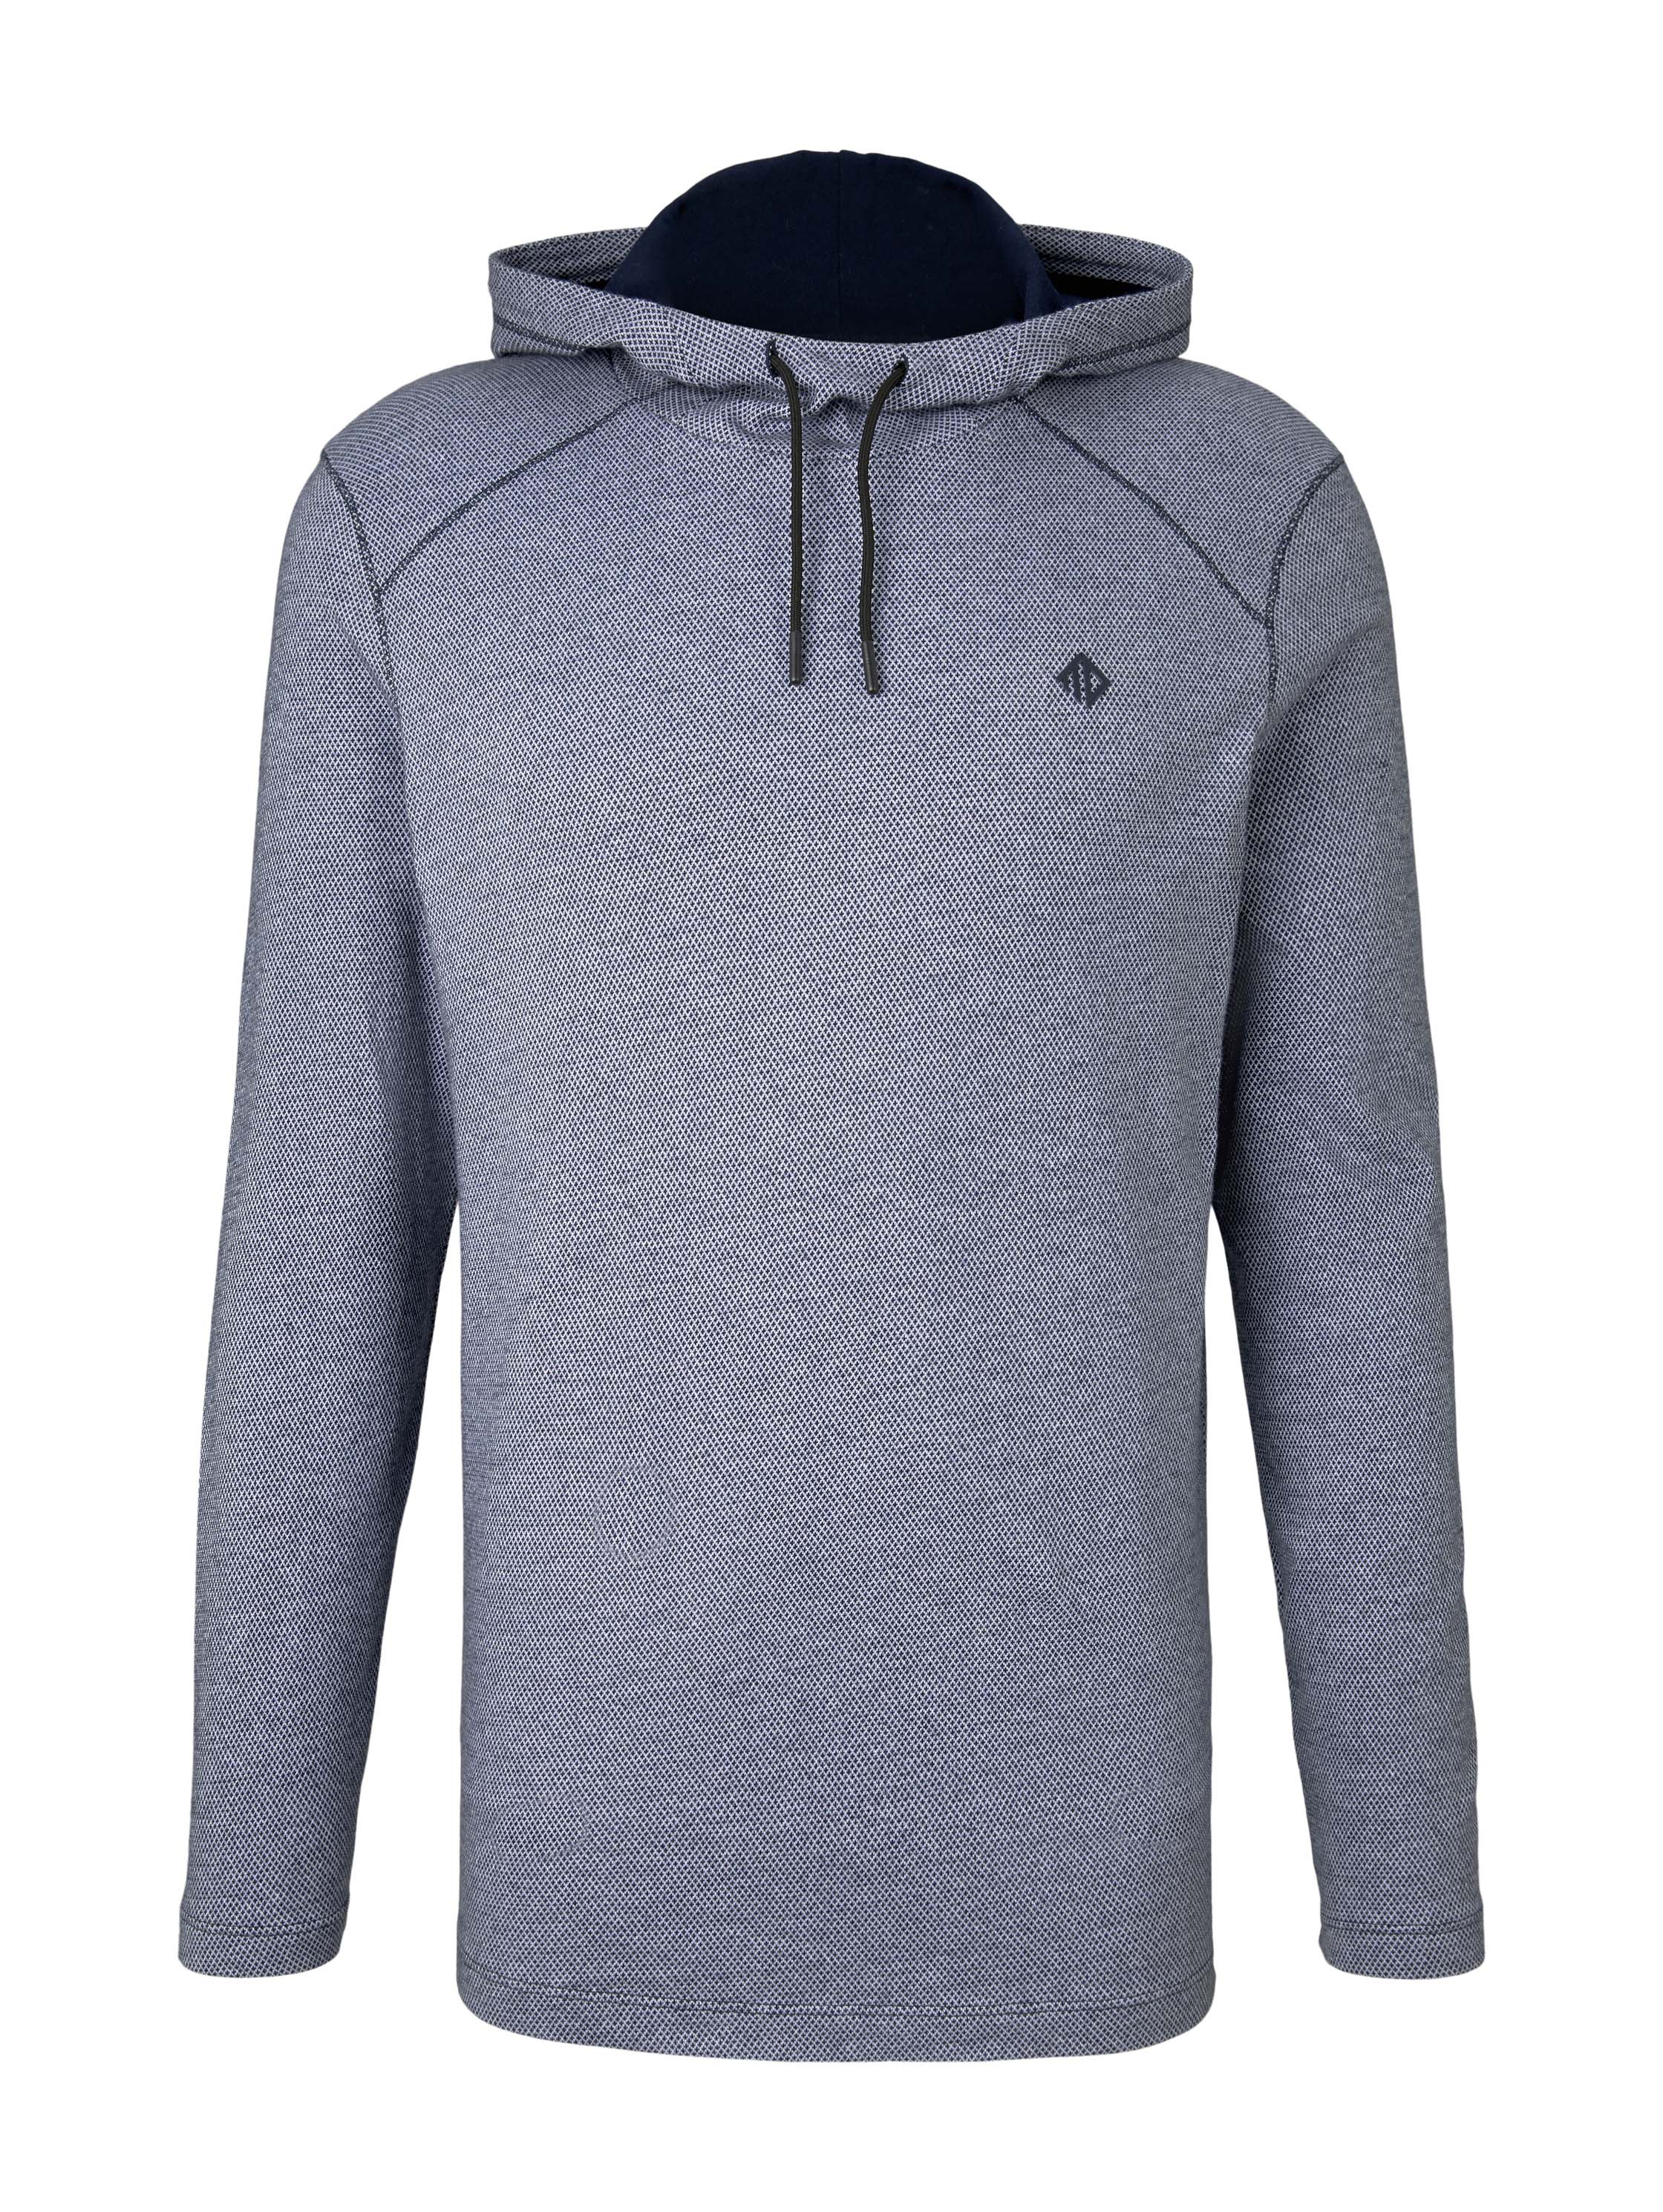 hooded T-shirt in structure, Sky Captain Blue Non-Solid